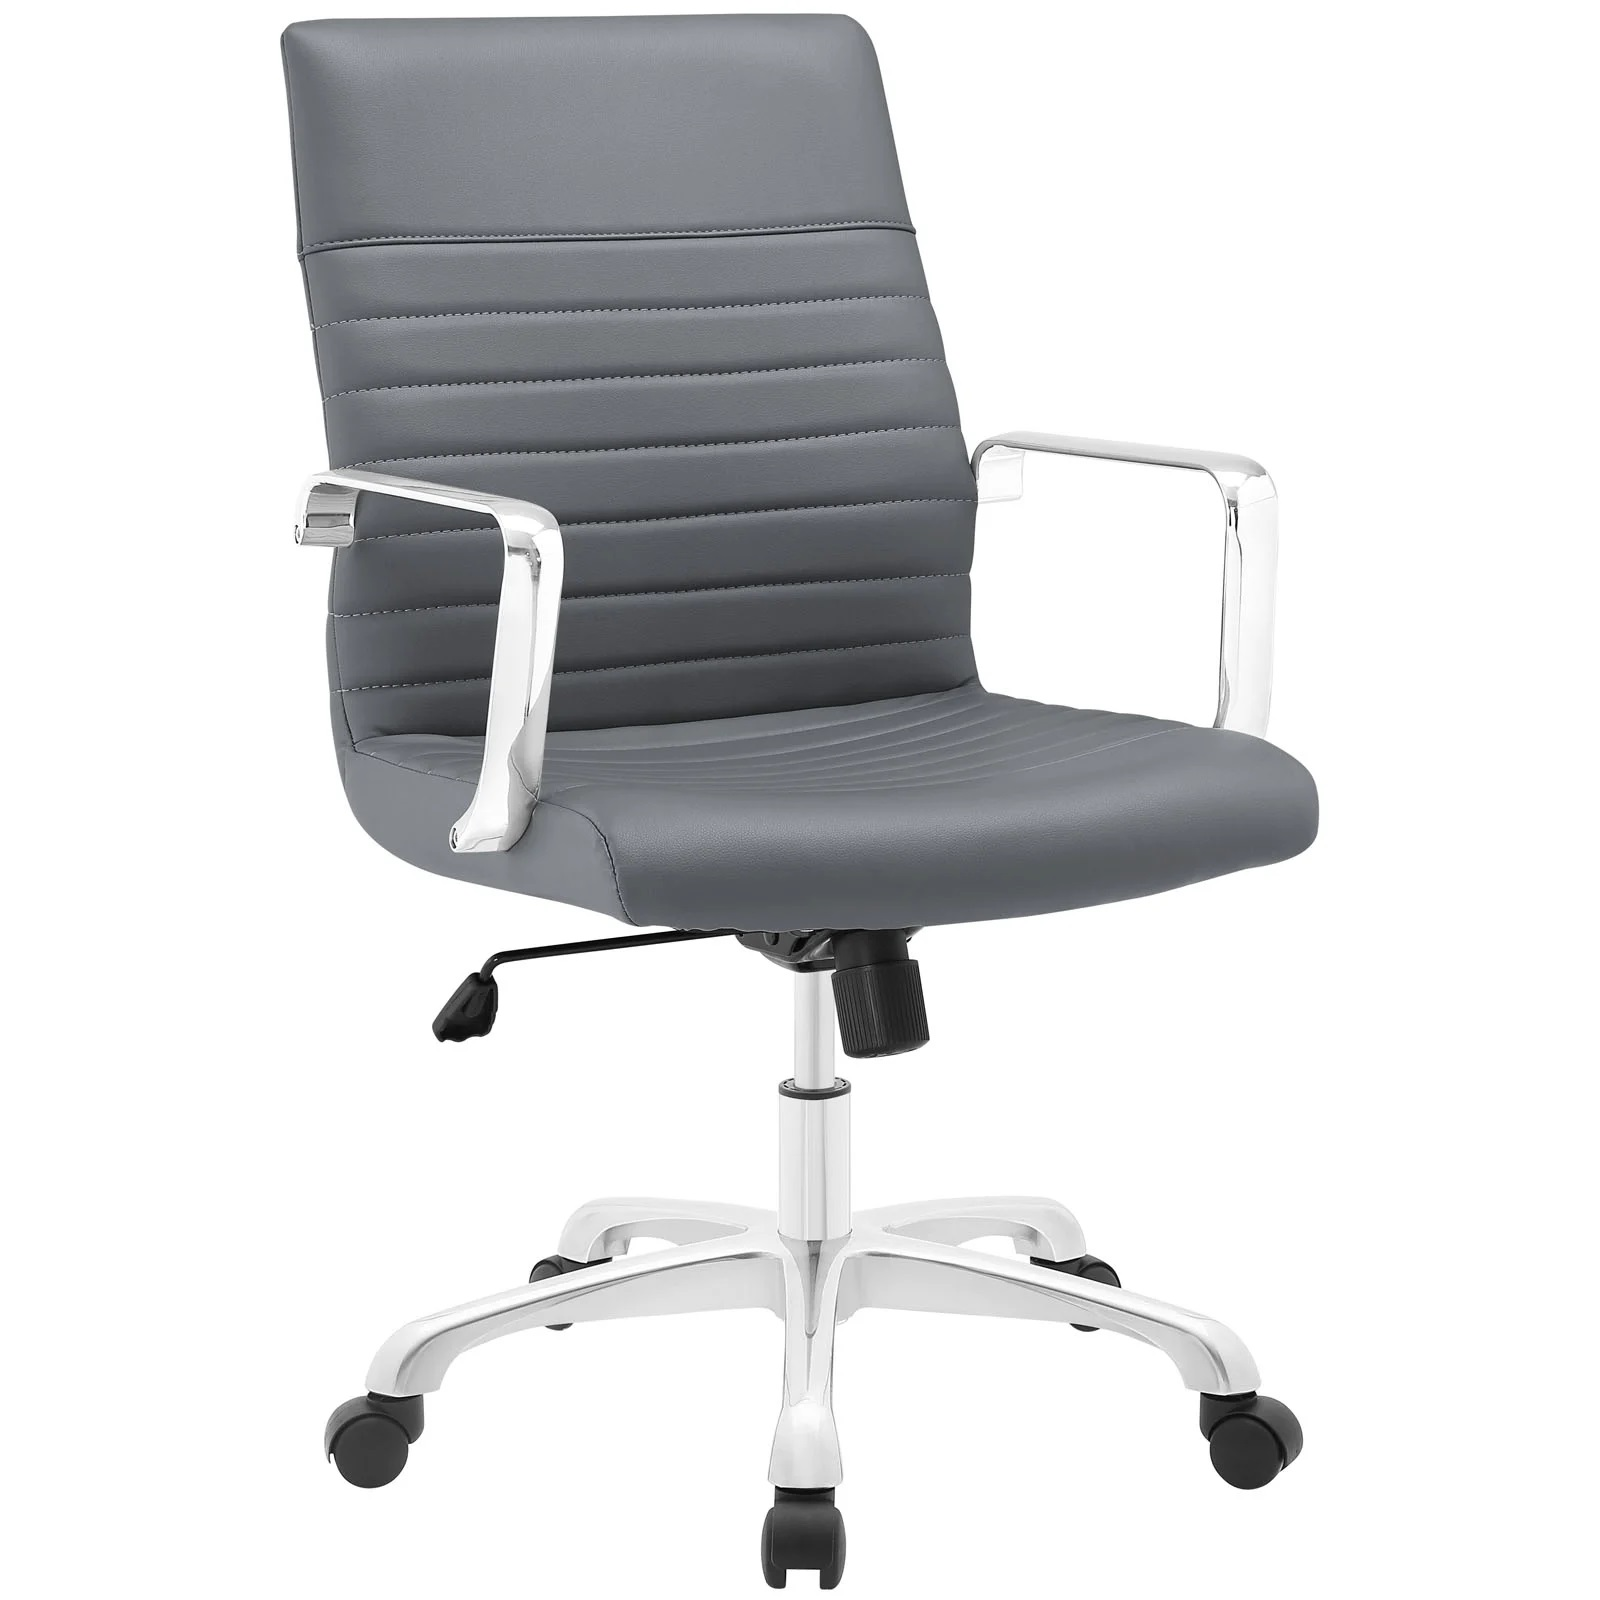 Mid Back Office Chair in Gray